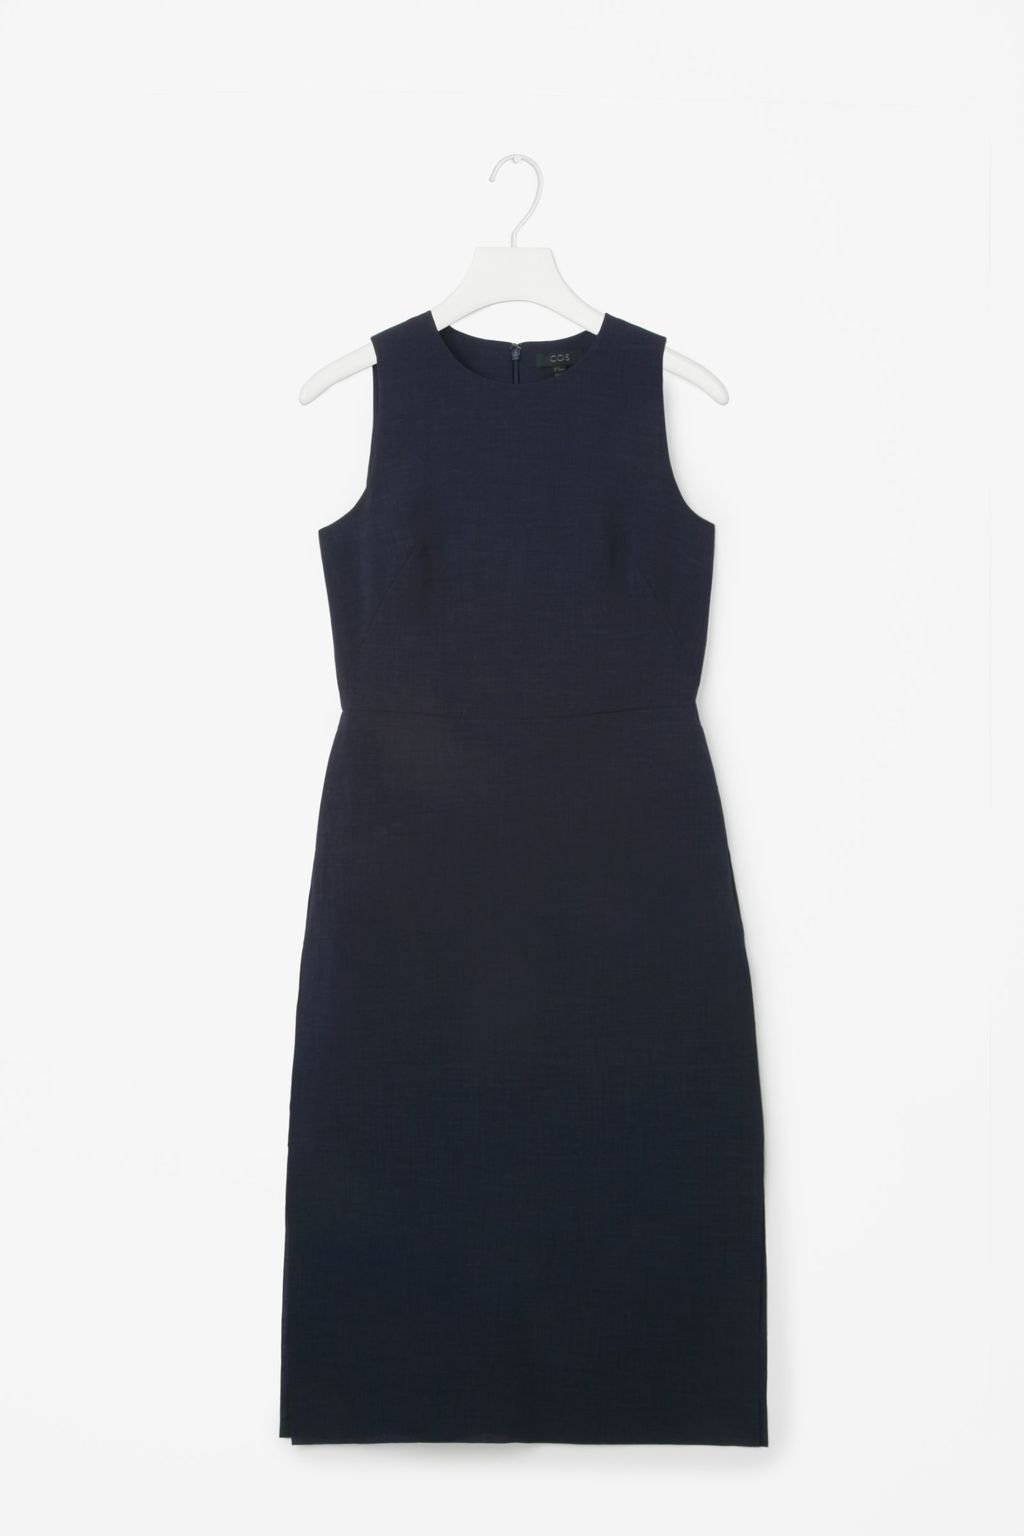 Mid Length Sleeveless Dress - style: shift; fit: tailored/fitted; pattern: plain; sleeve style: sleeveless; predominant colour: navy; occasions: evening, work, creative work; length: just above the knee; fibres: polyester/polyamide - 100%; neckline: crew; sleeve length: sleeveless; pattern type: fabric; texture group: woven light midweight; season: s/s 2016